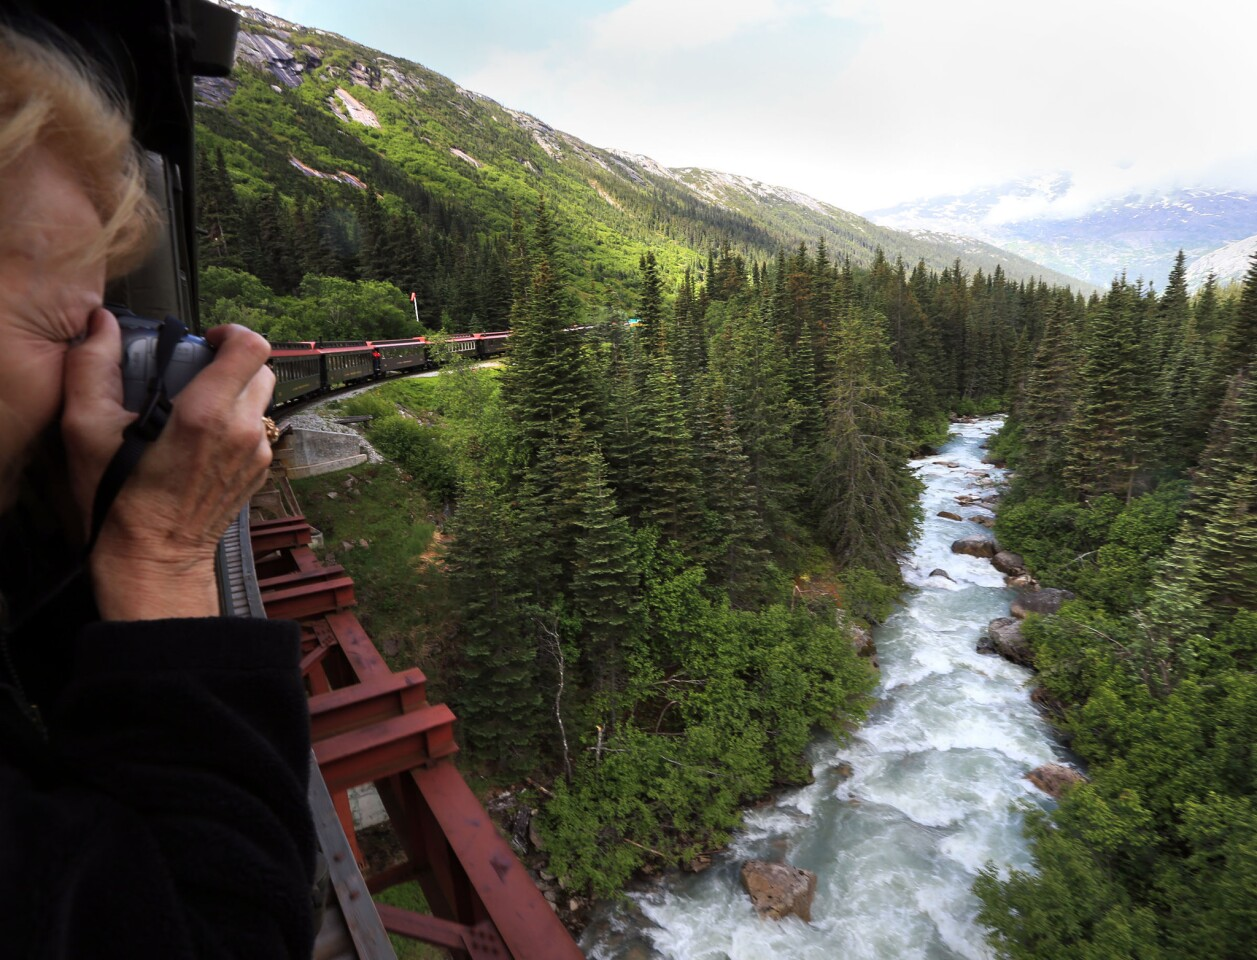 A passenger records a river scene from the train that travels from Skagway, Alaska into Canada.